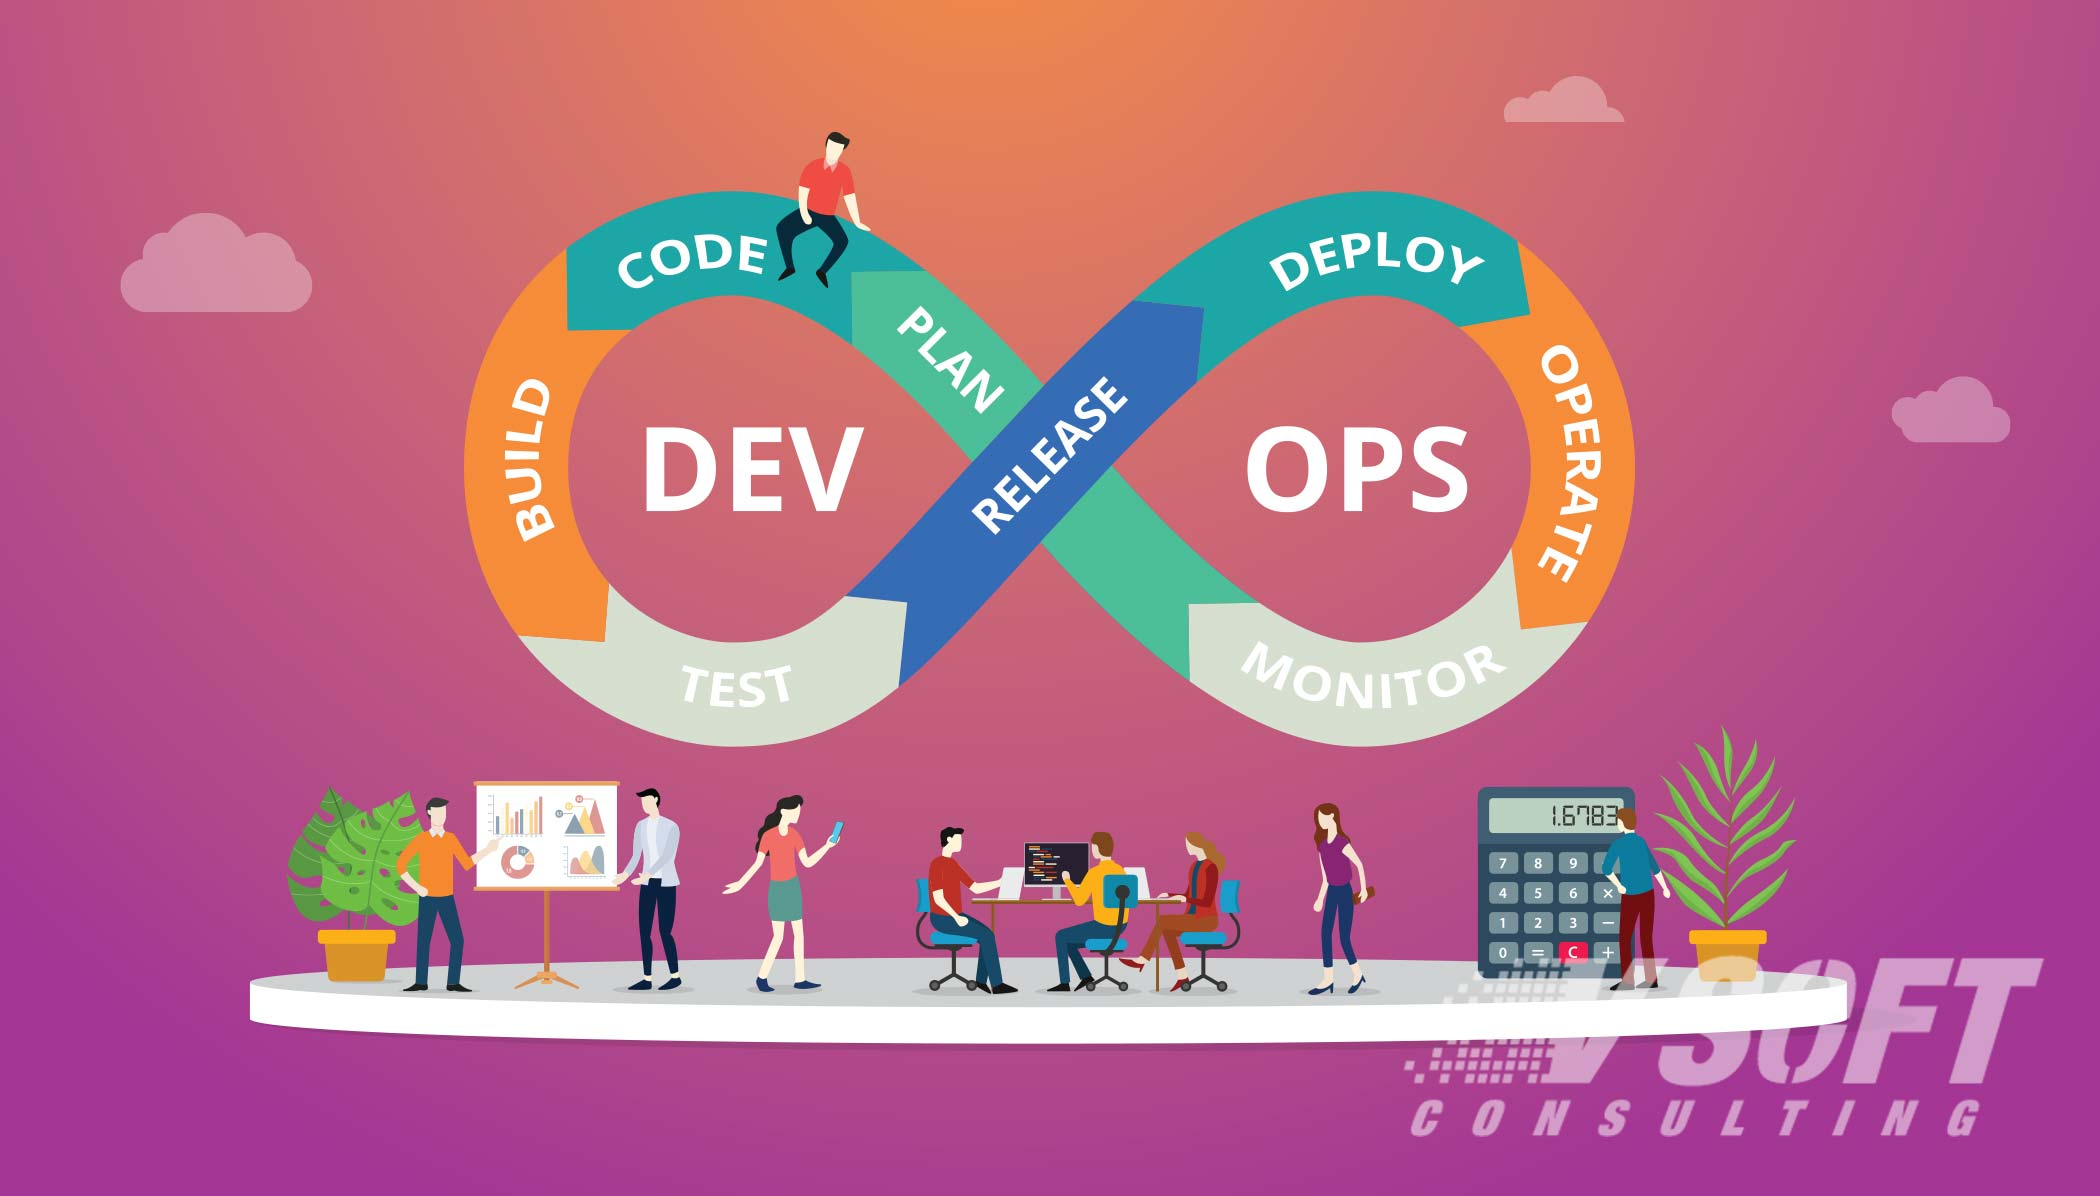 AWS Devops capabilities